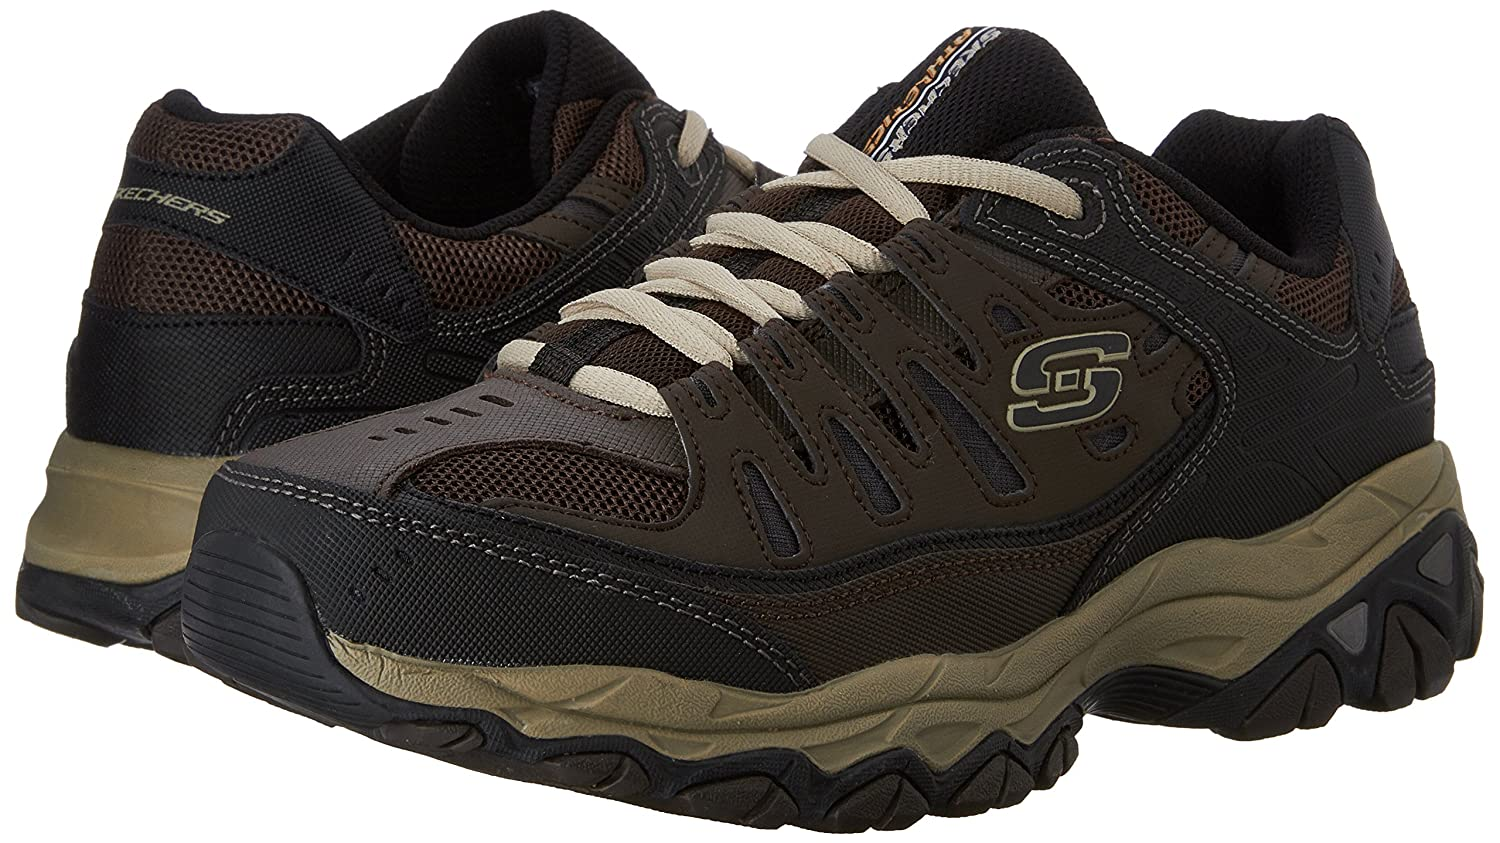 Skechers-Afterburn-Memory-Foam-M-Fit-Men-039-s-Sport-After-Burn-Sneakers-Shoes thumbnail 32